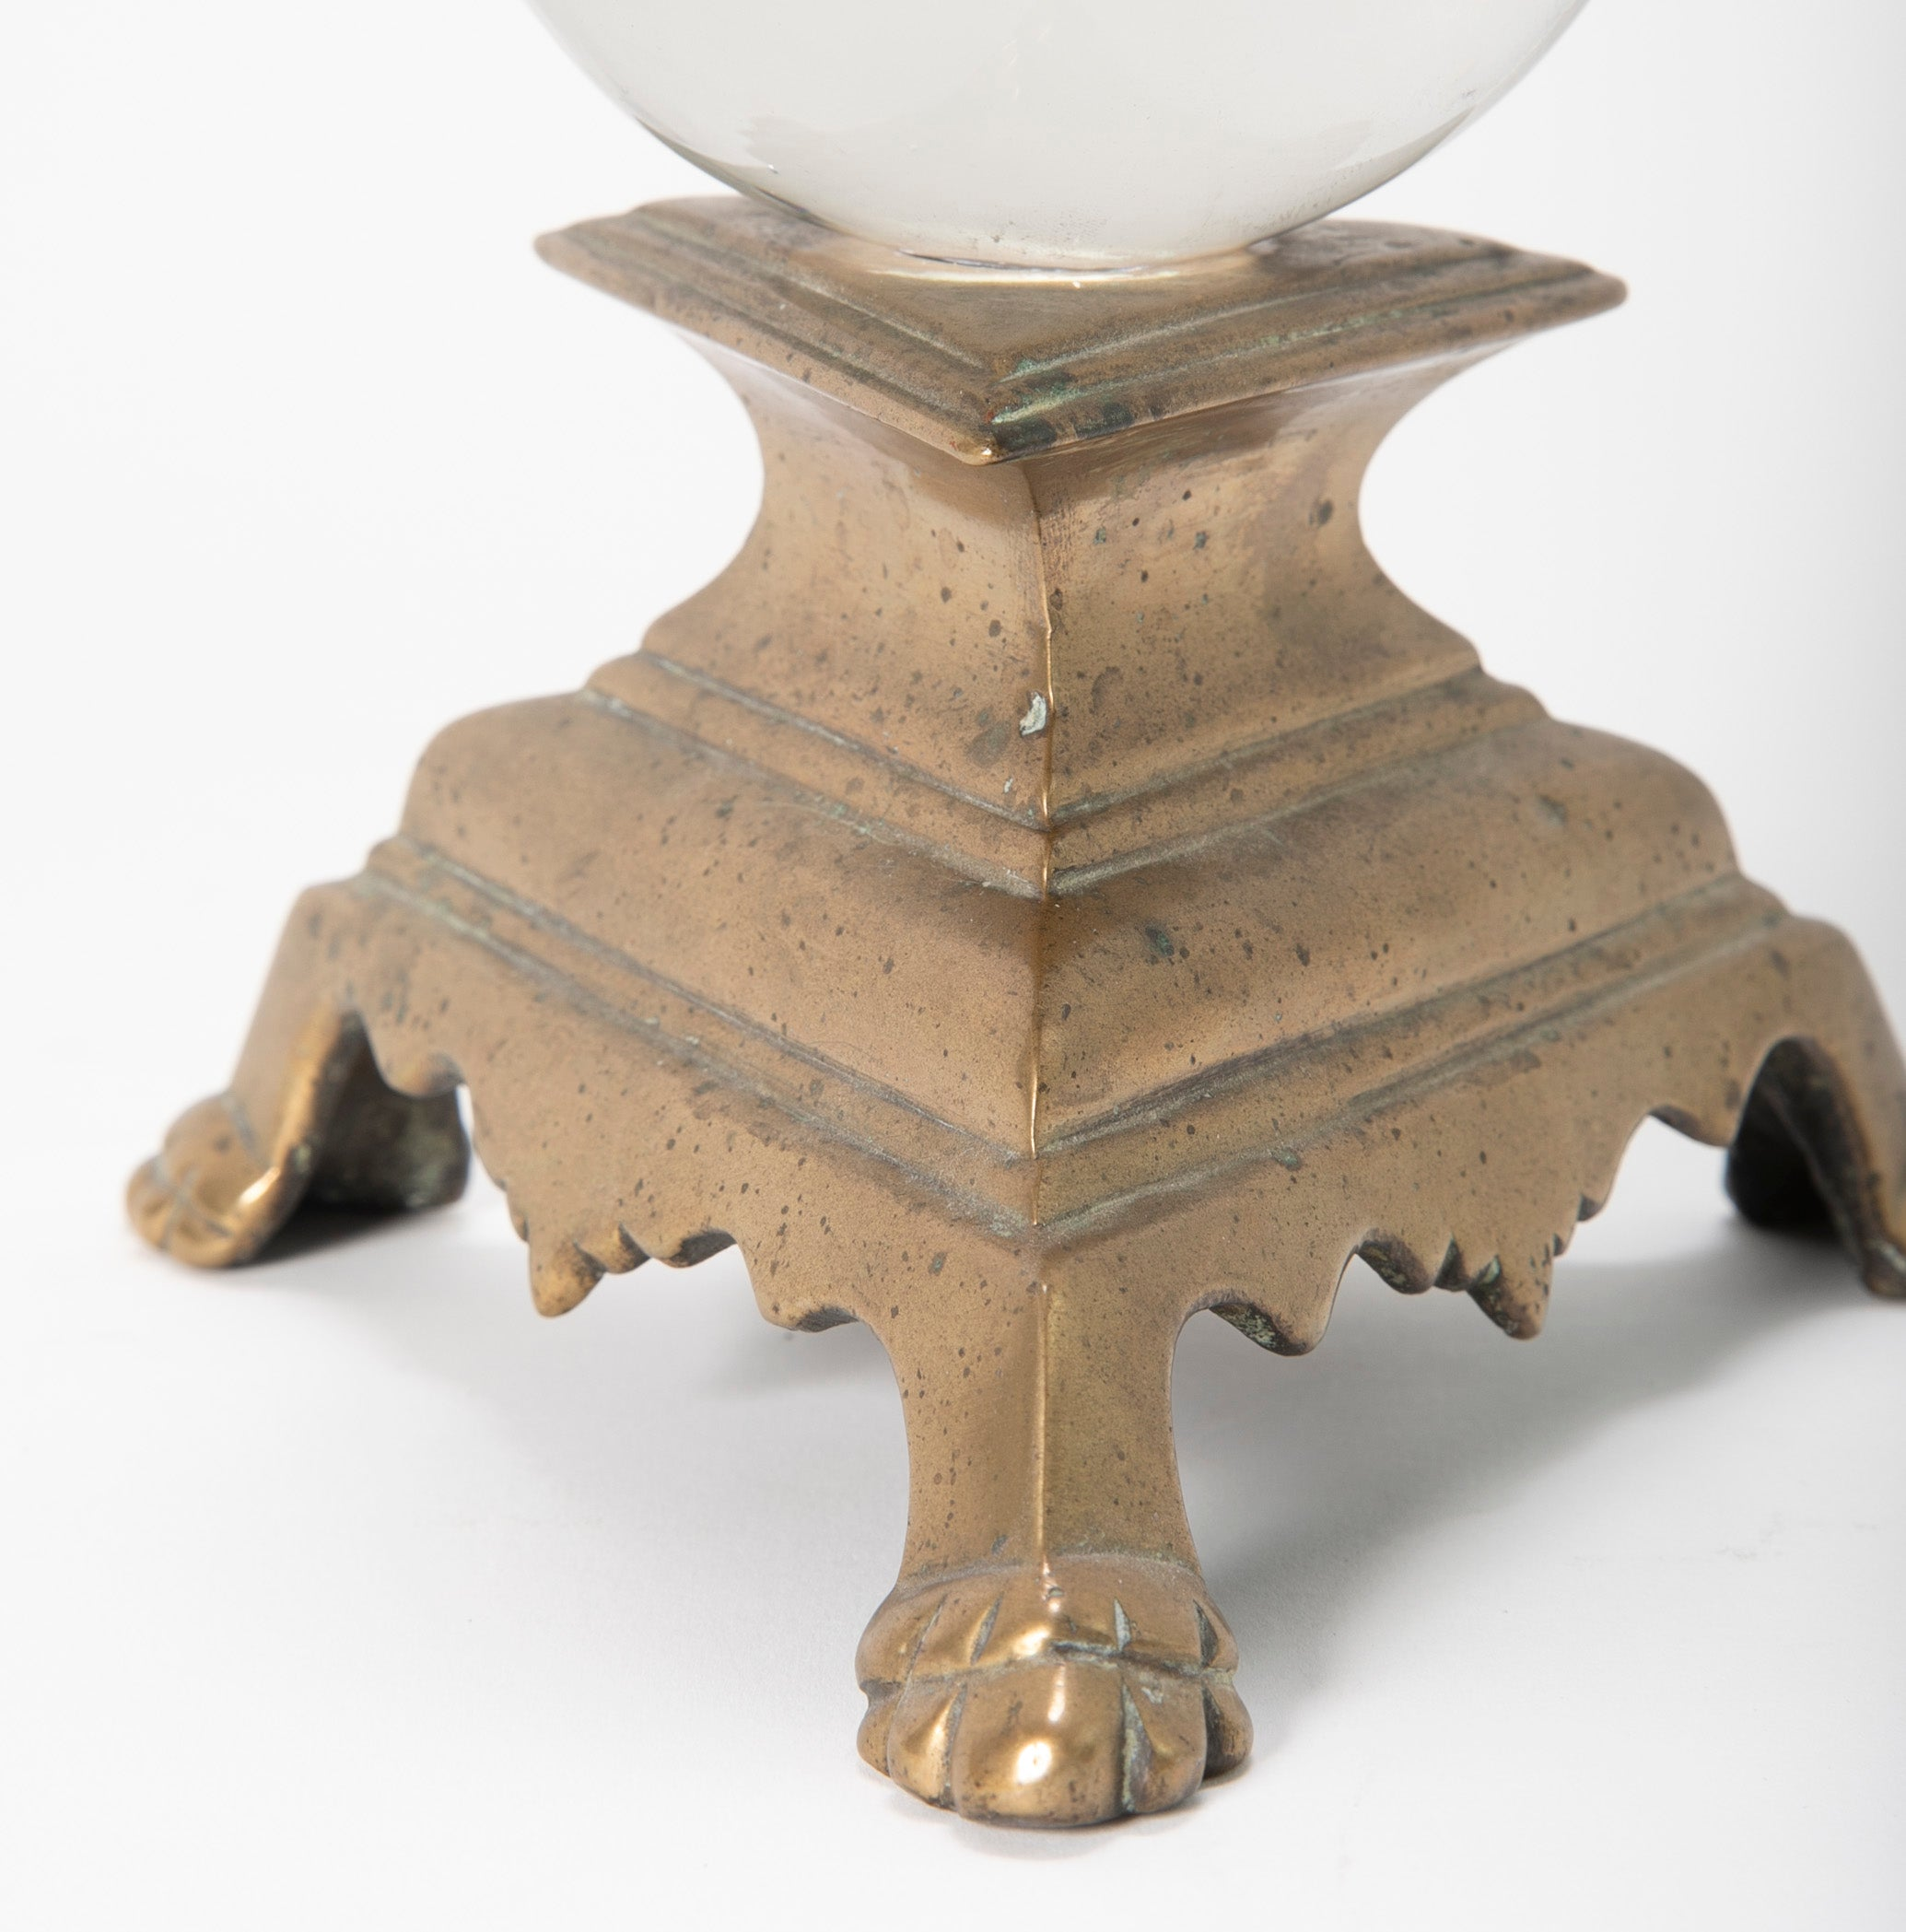 Crystal Ball on 18th Century Italian Bronze Candlestick Base